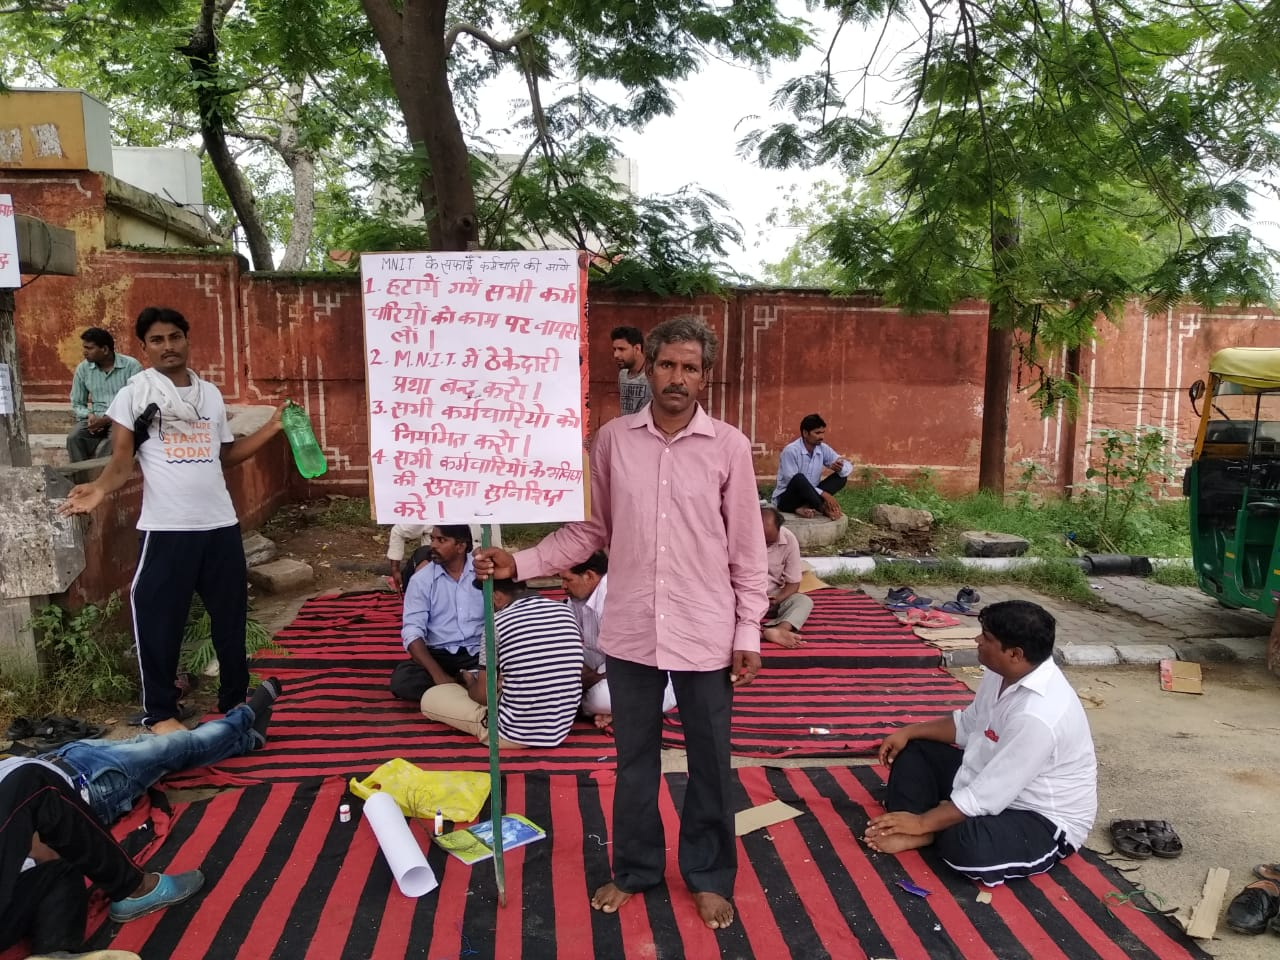 MNIT Jaipur Agrees to Reinstate Contracts After 11-Day Protest by Sanitation Workers